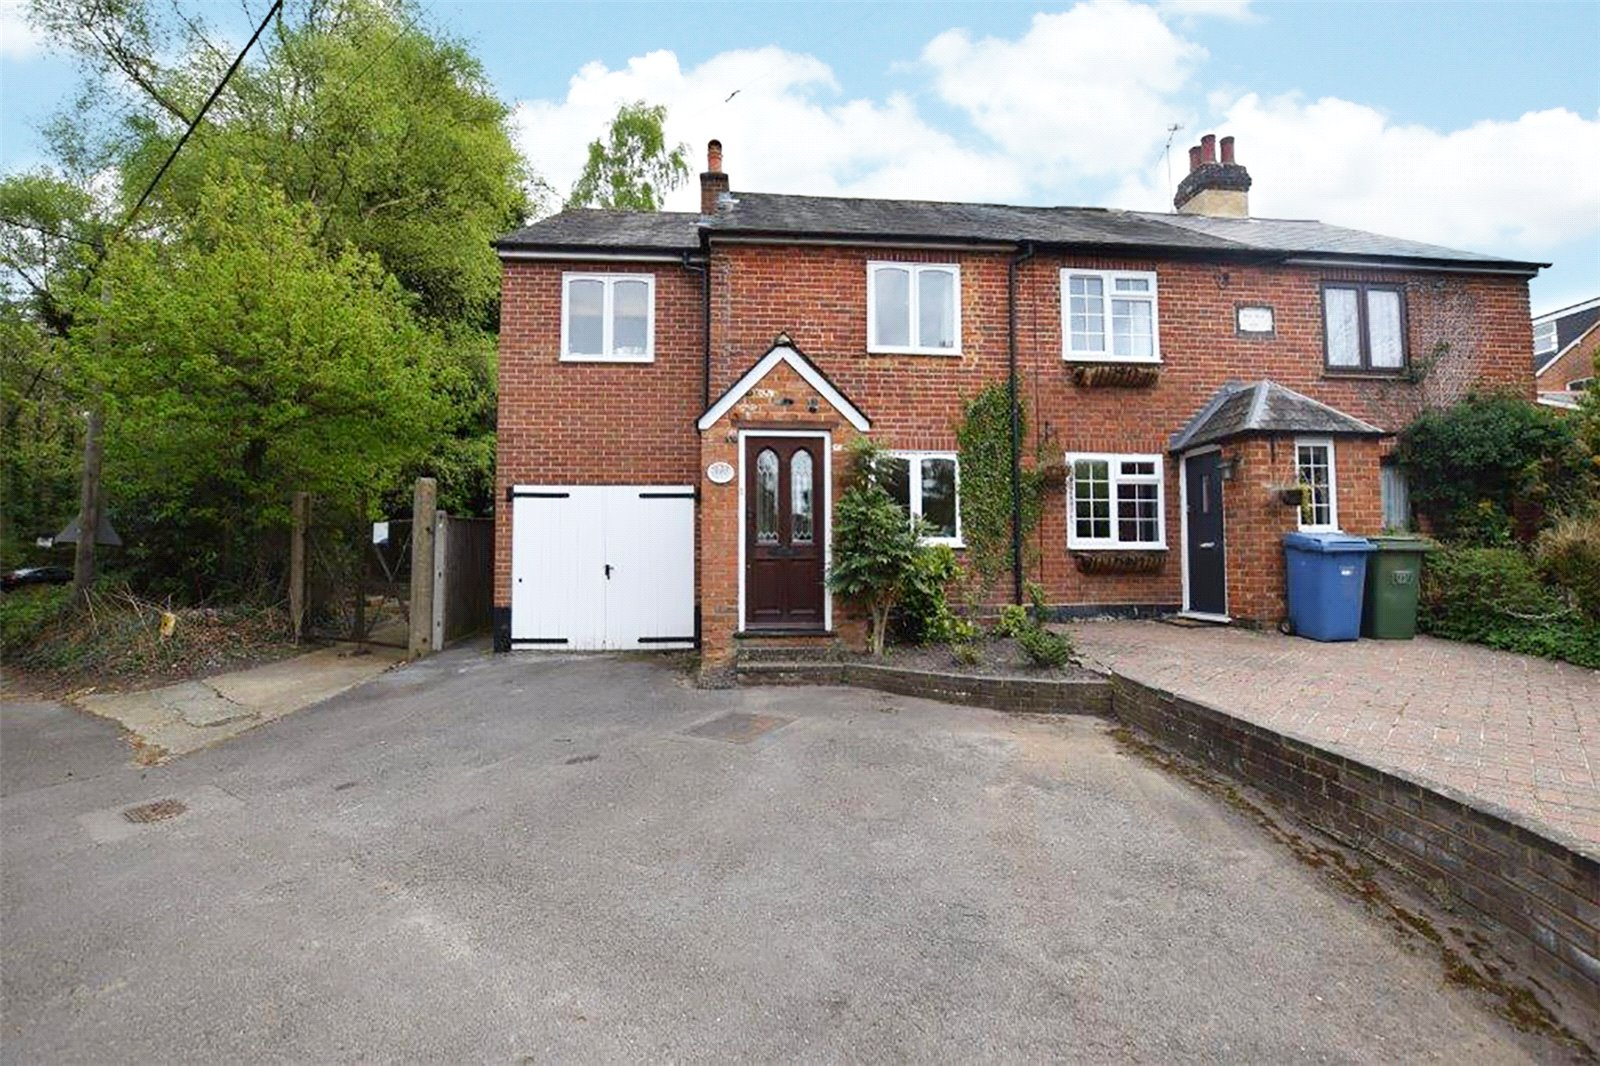 3 Bedrooms End Of Terrace House for sale in Rosedale Cottage, Long Hill Road, Ascot, SL5